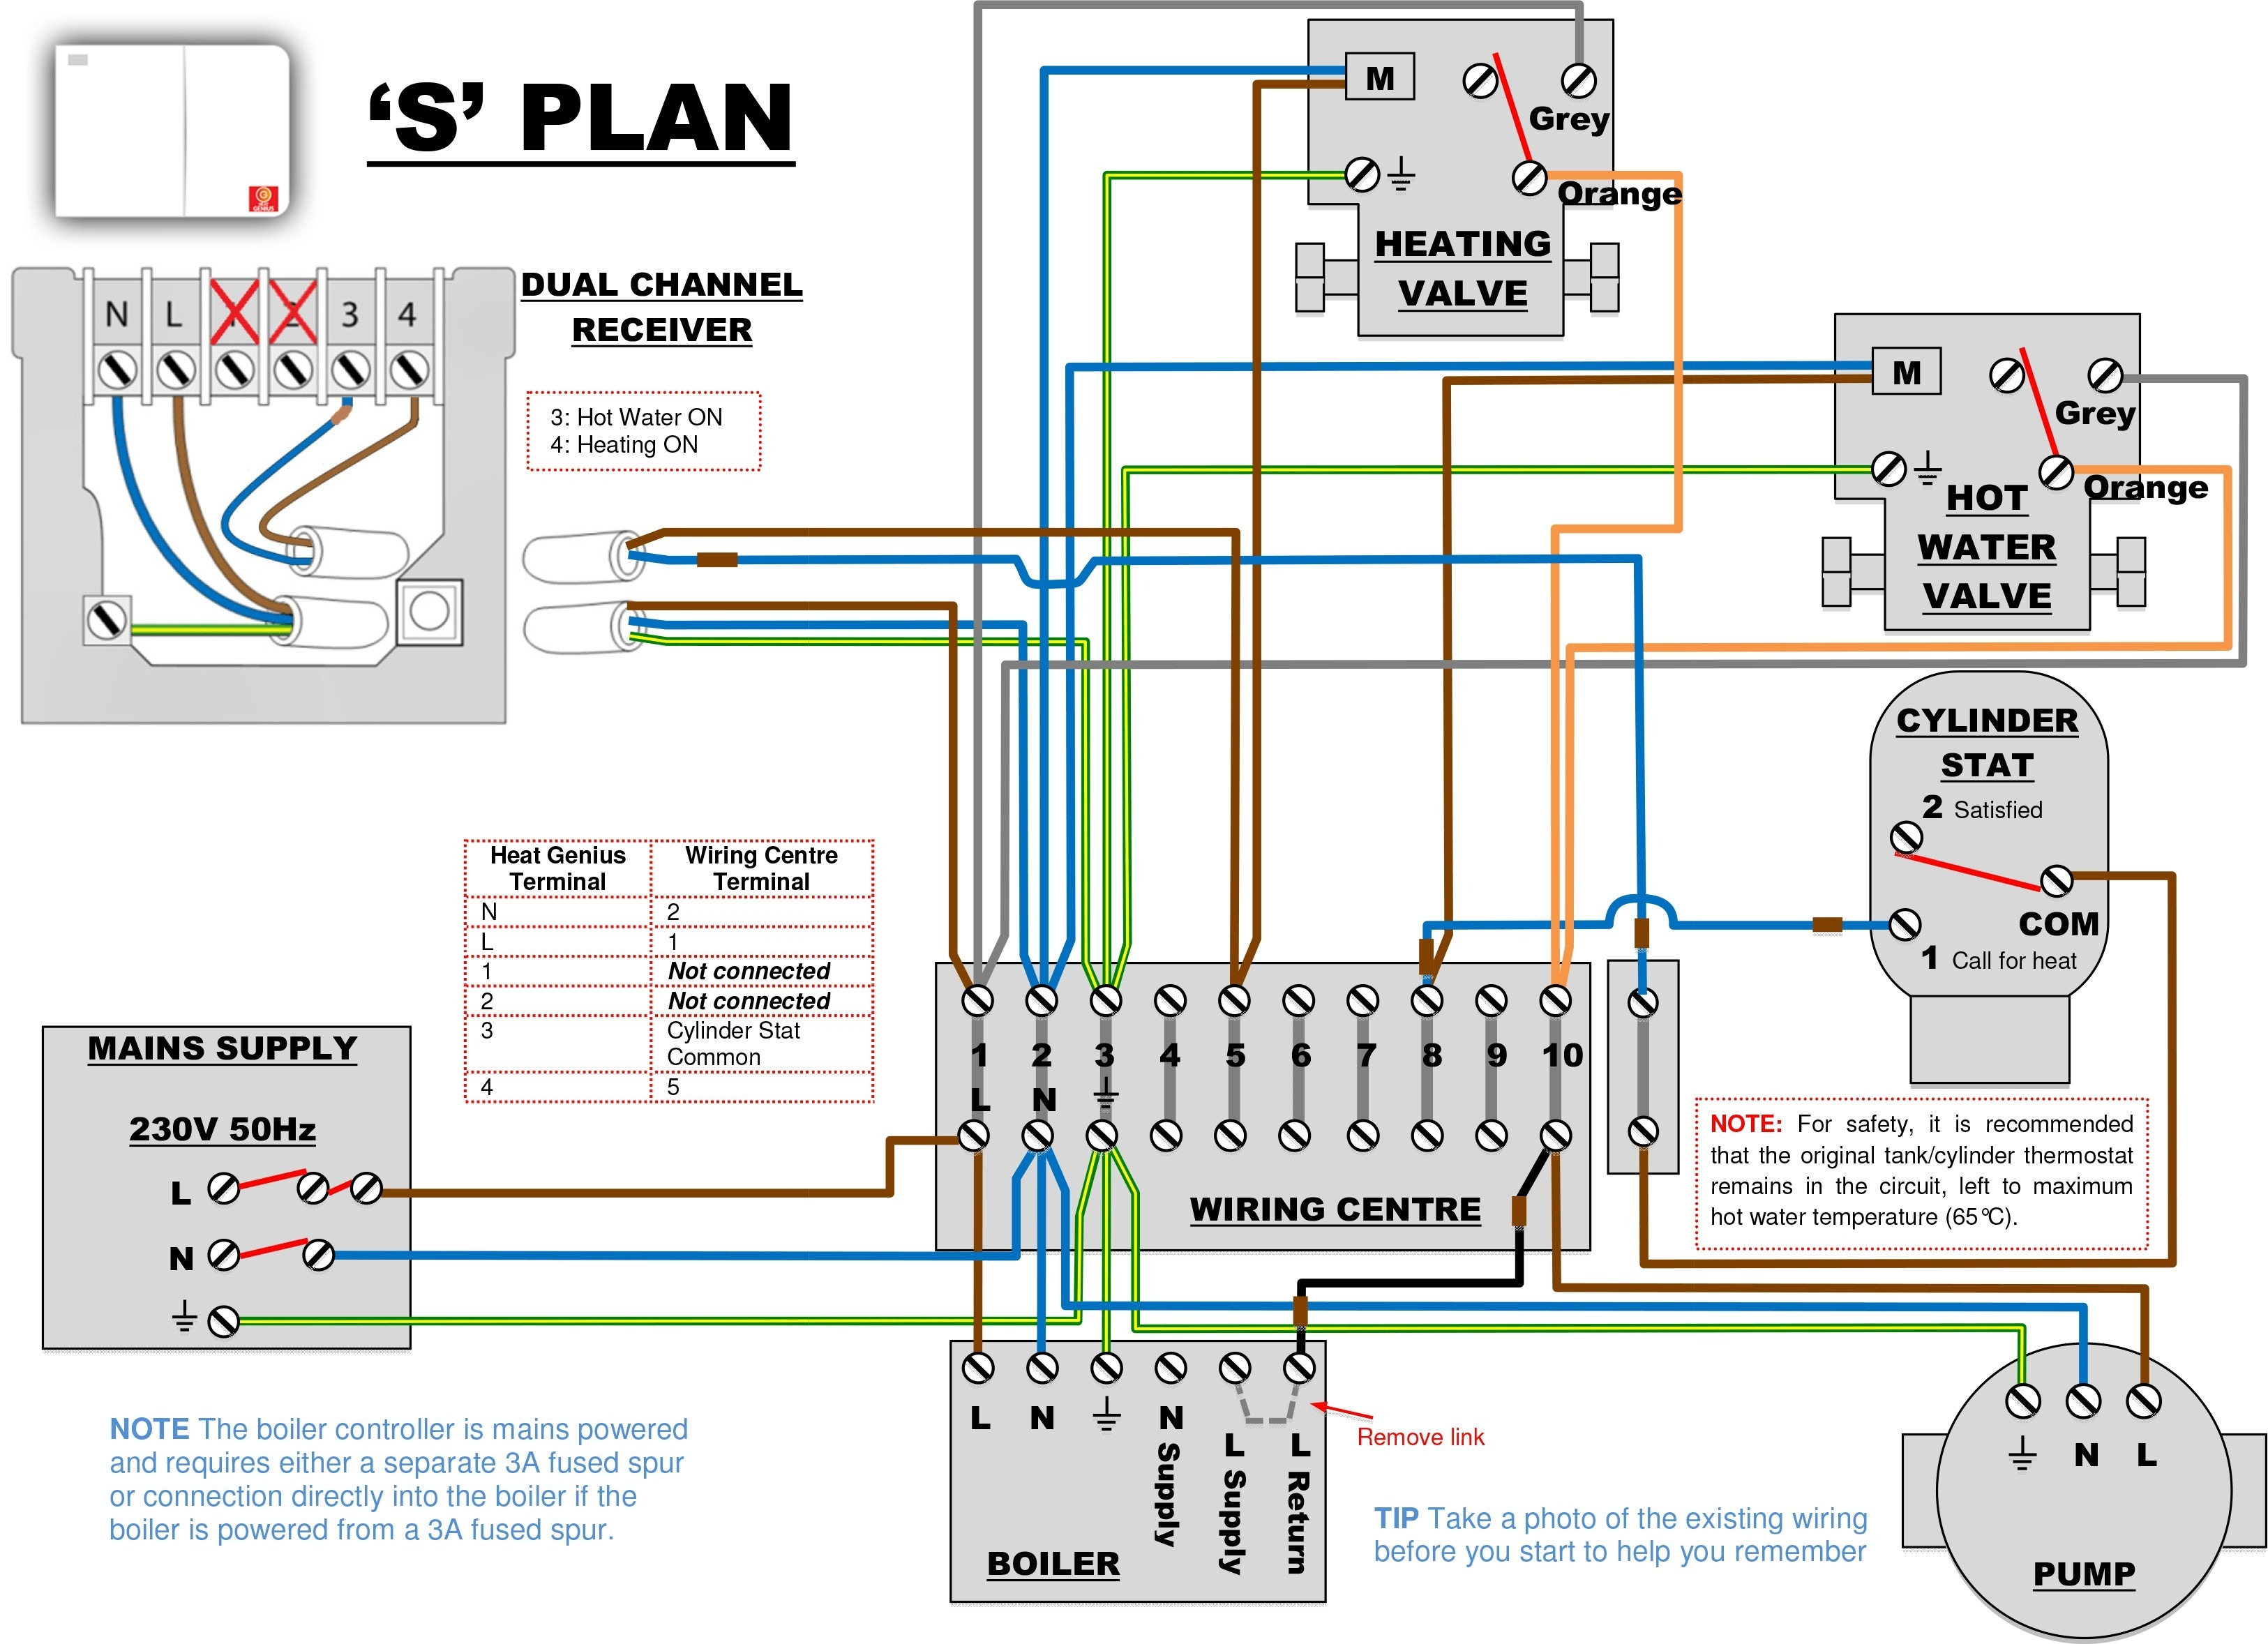 Nest Heat Pump Wiring Diagram - Nest thermostat Heat Pump Wiring Diagram Download Heat Pump thermostat Wiring Diagram New Nest thermostat 10j